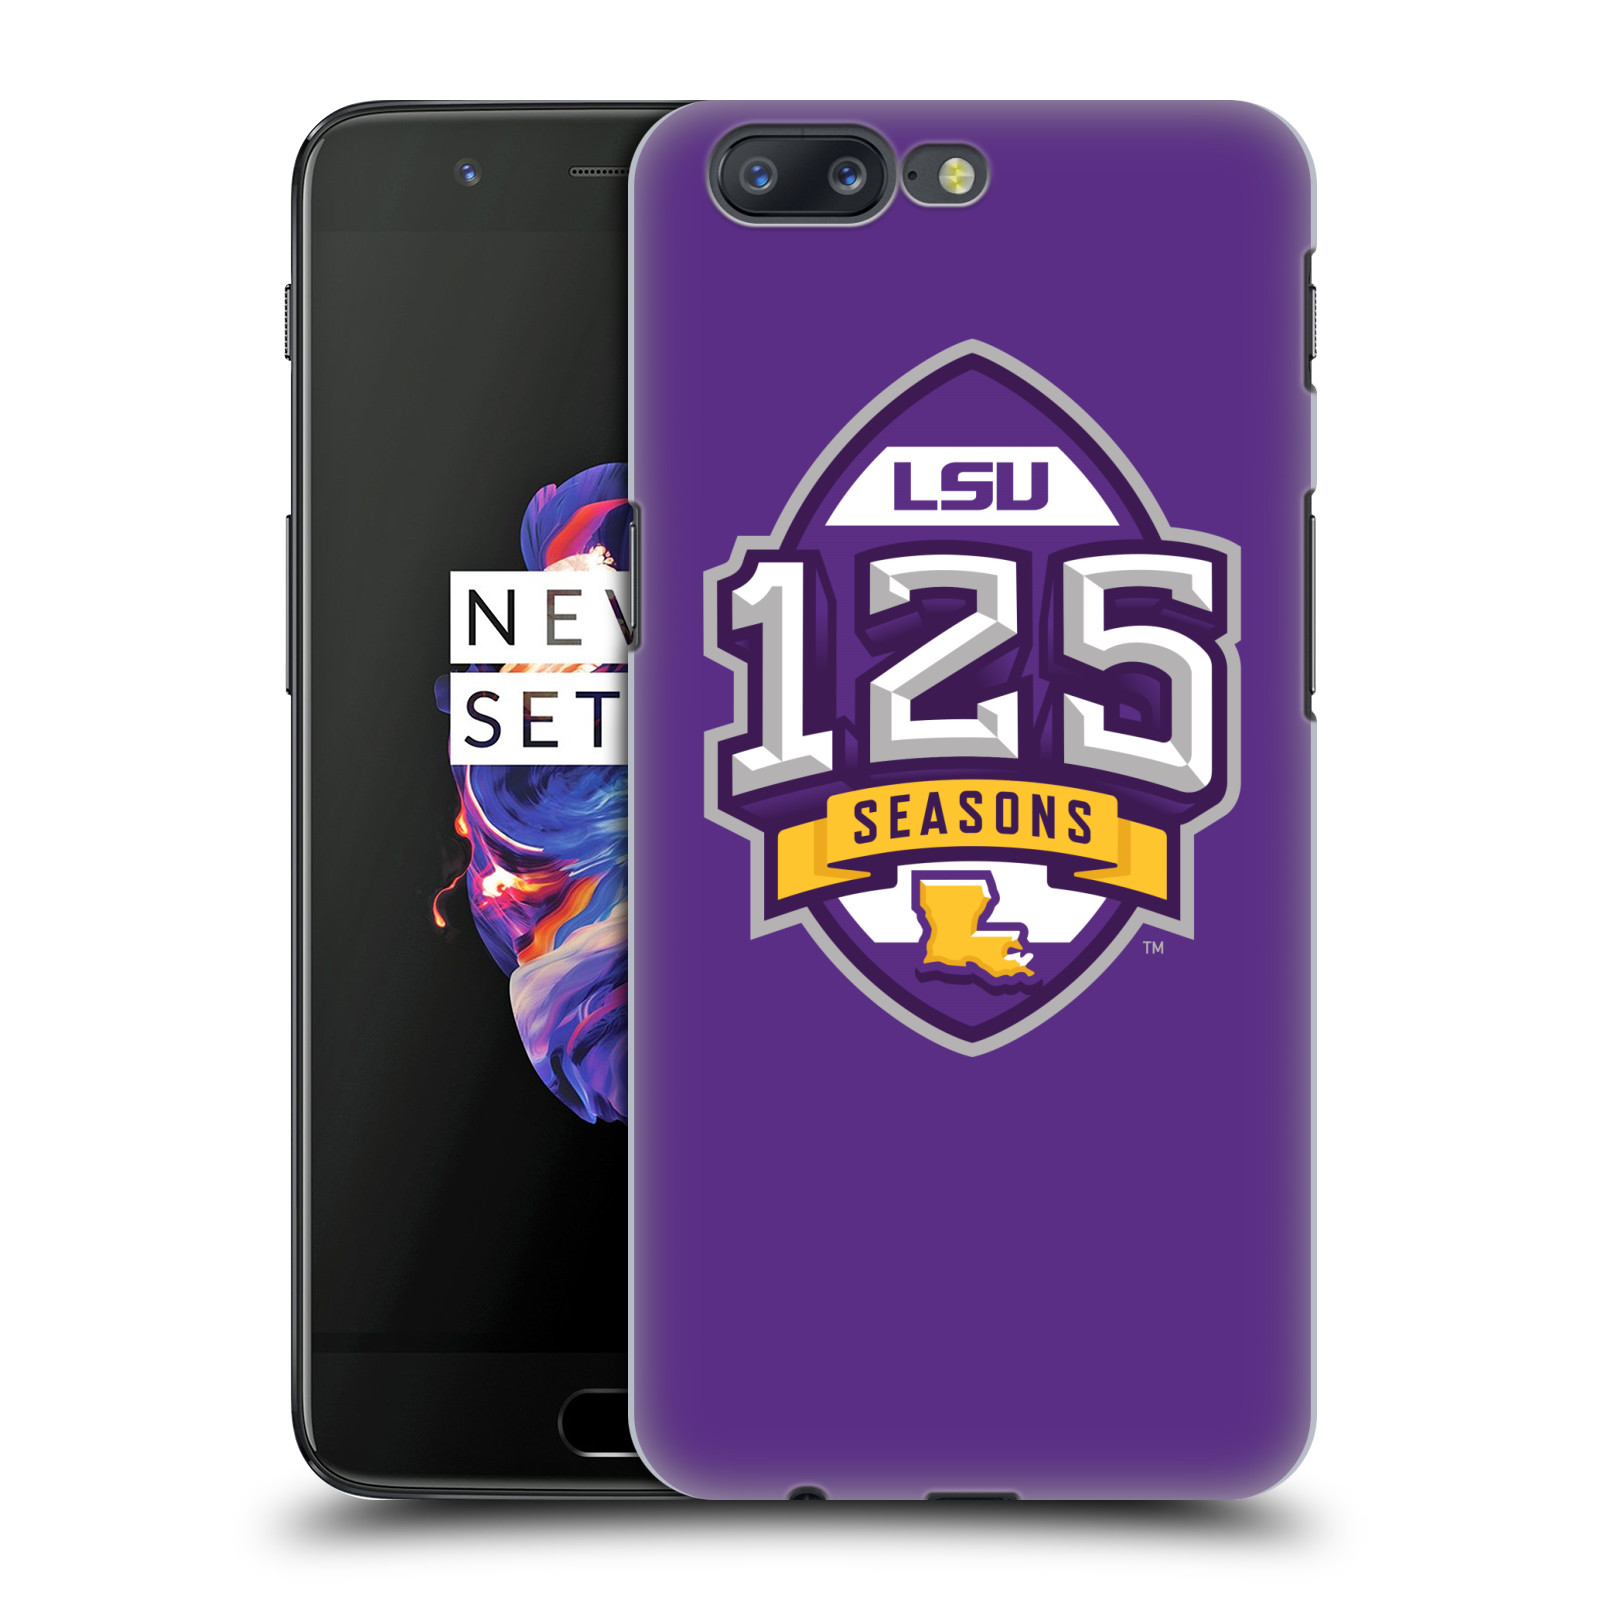 Official-LOUISIANA-State-University-LSU-2-Coque-Arriere-Pour-ONEPLUS-ASUS-AMAZON